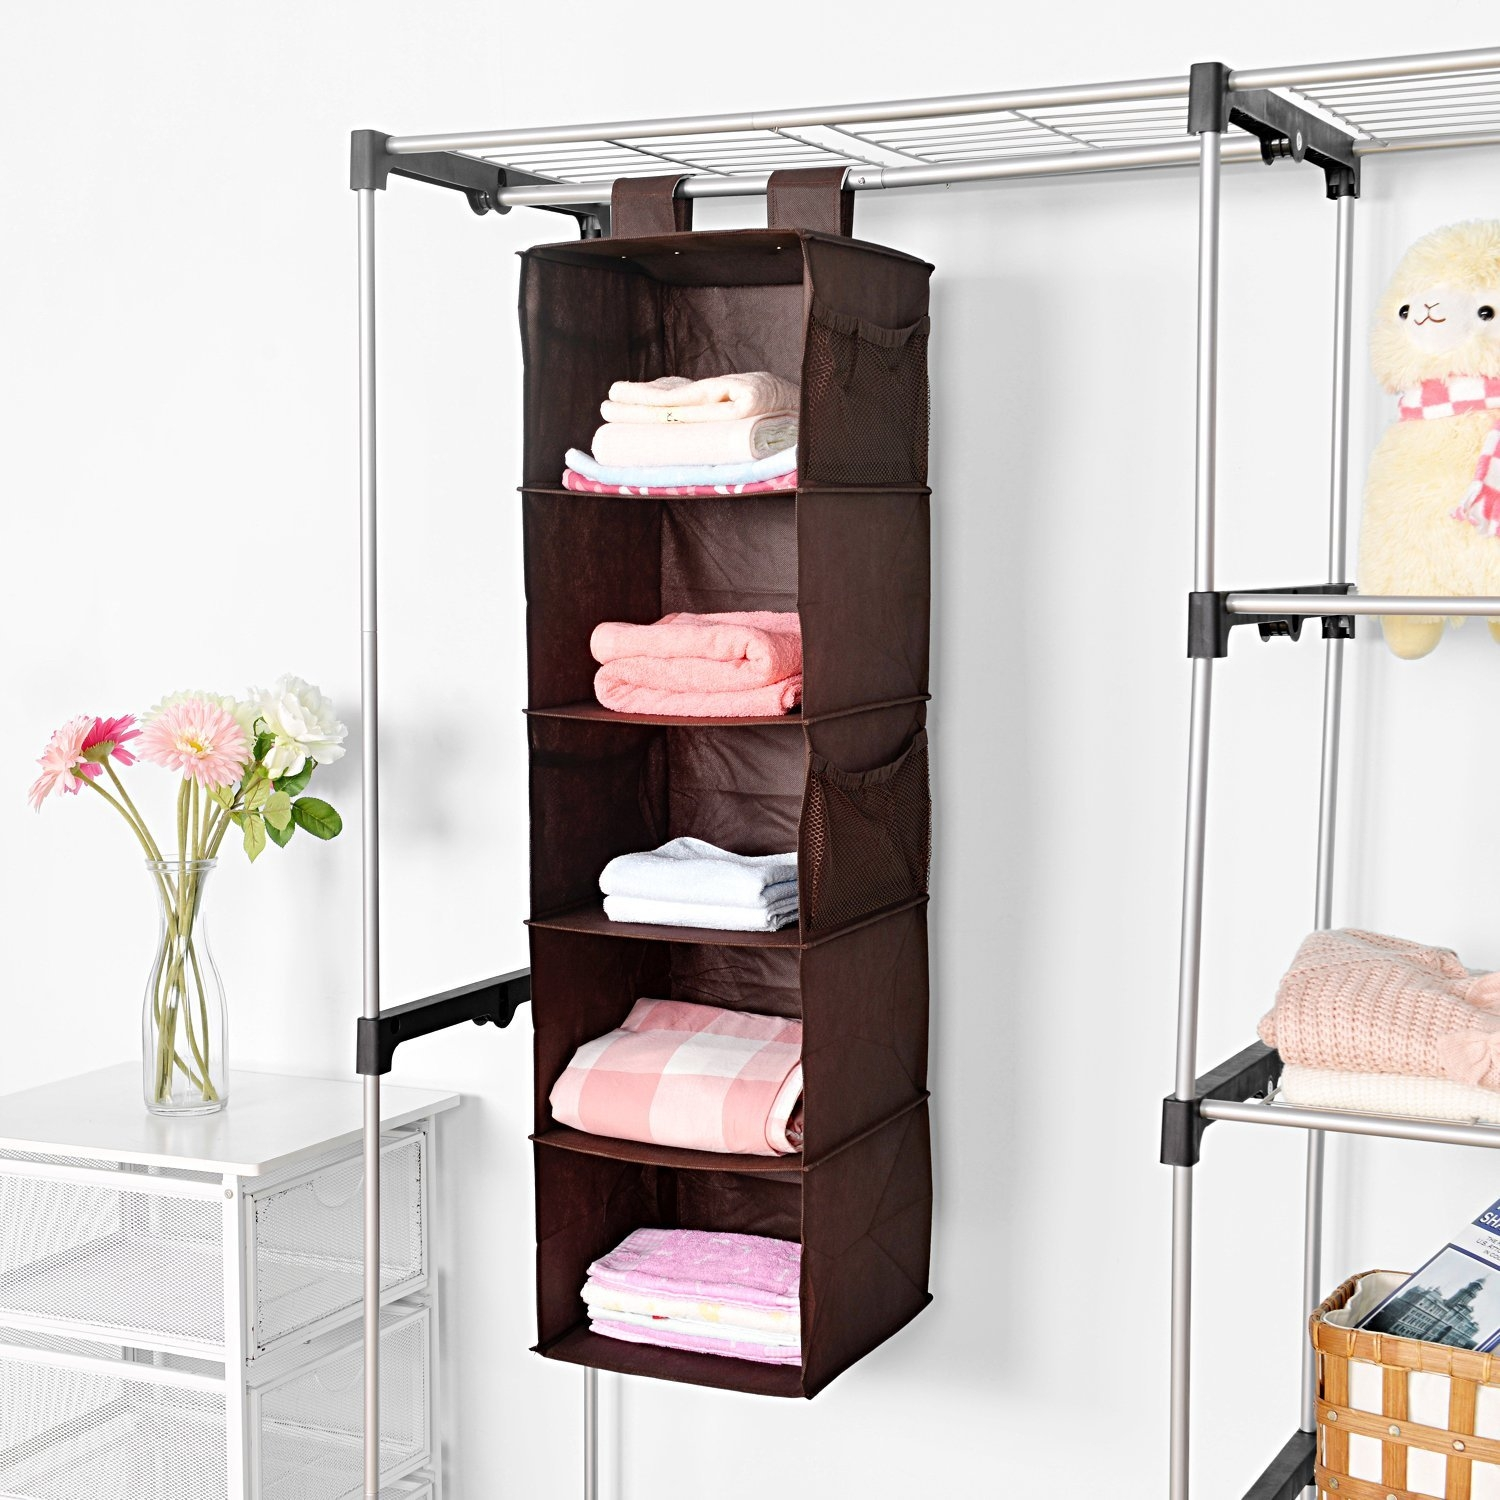 Wardrobe Storage Shelves 25 Collection Of Hanging Wardrobe Shelves Wardrobe Ideas